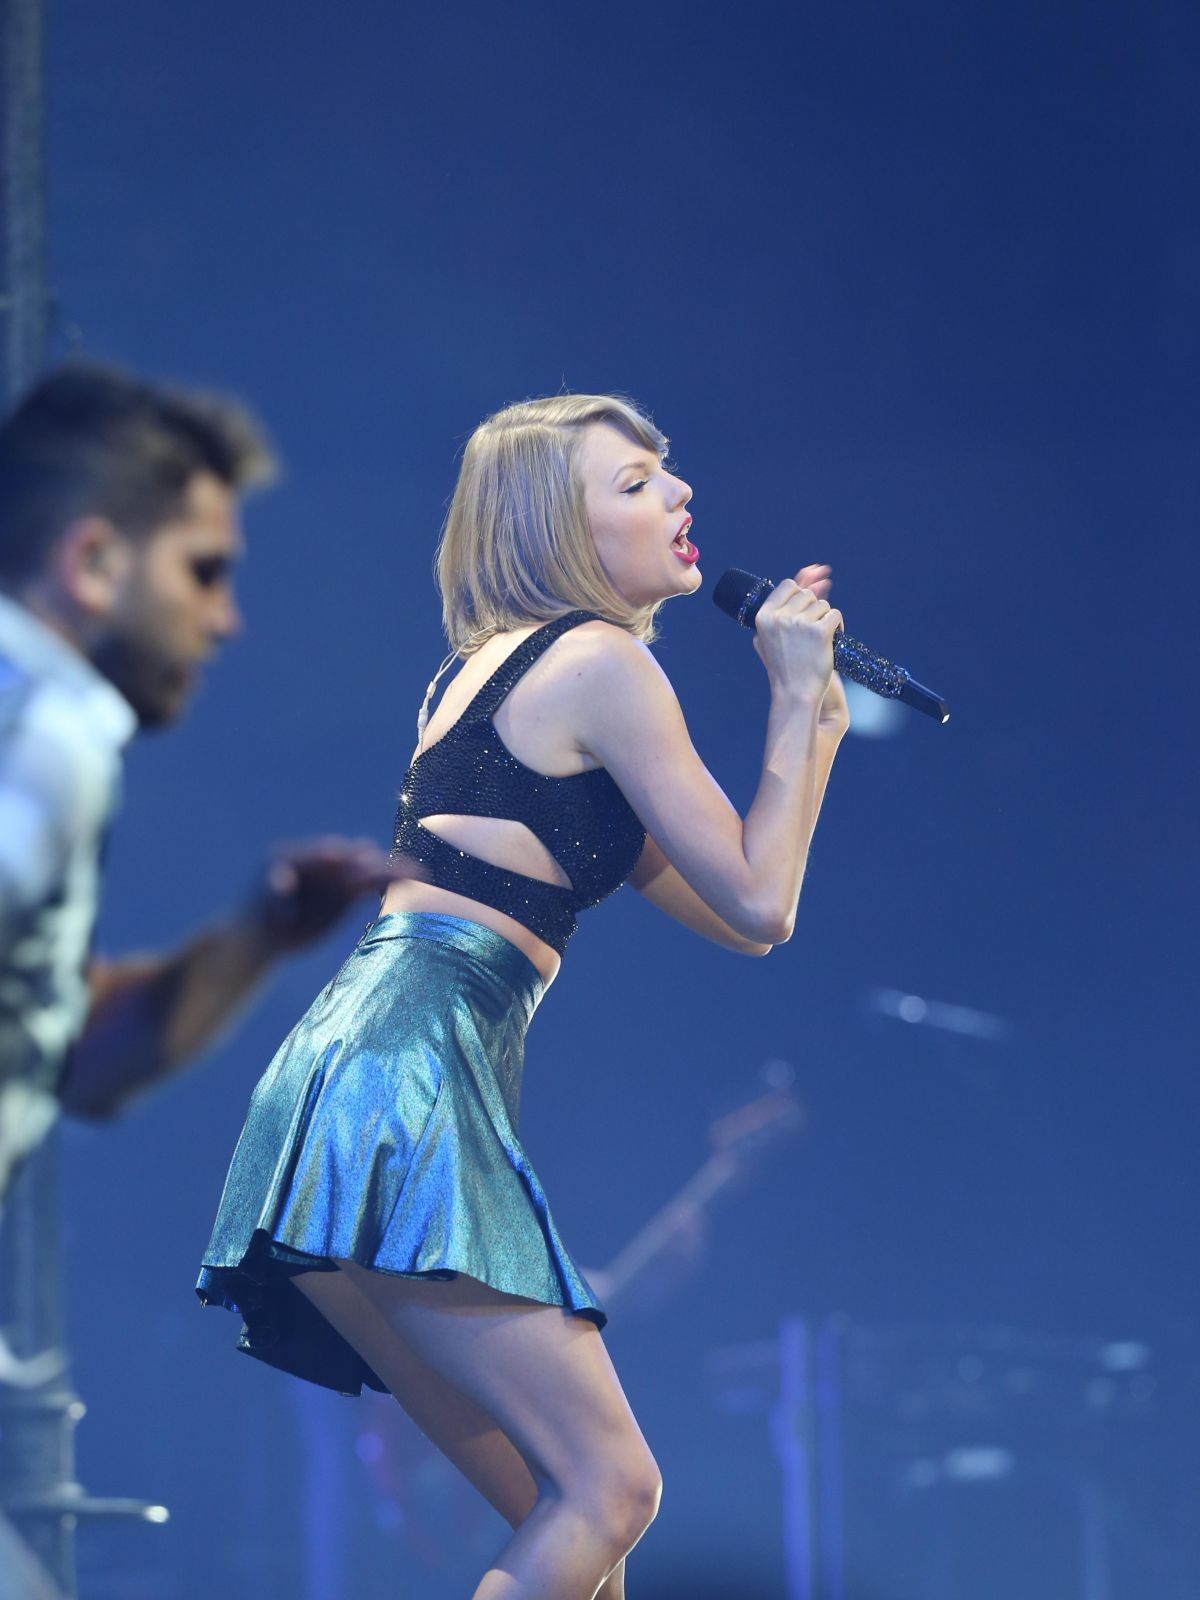 Taylor Swift 2015 : Taylor Swift Performs At The 1989 World Tour In Adelaide-02